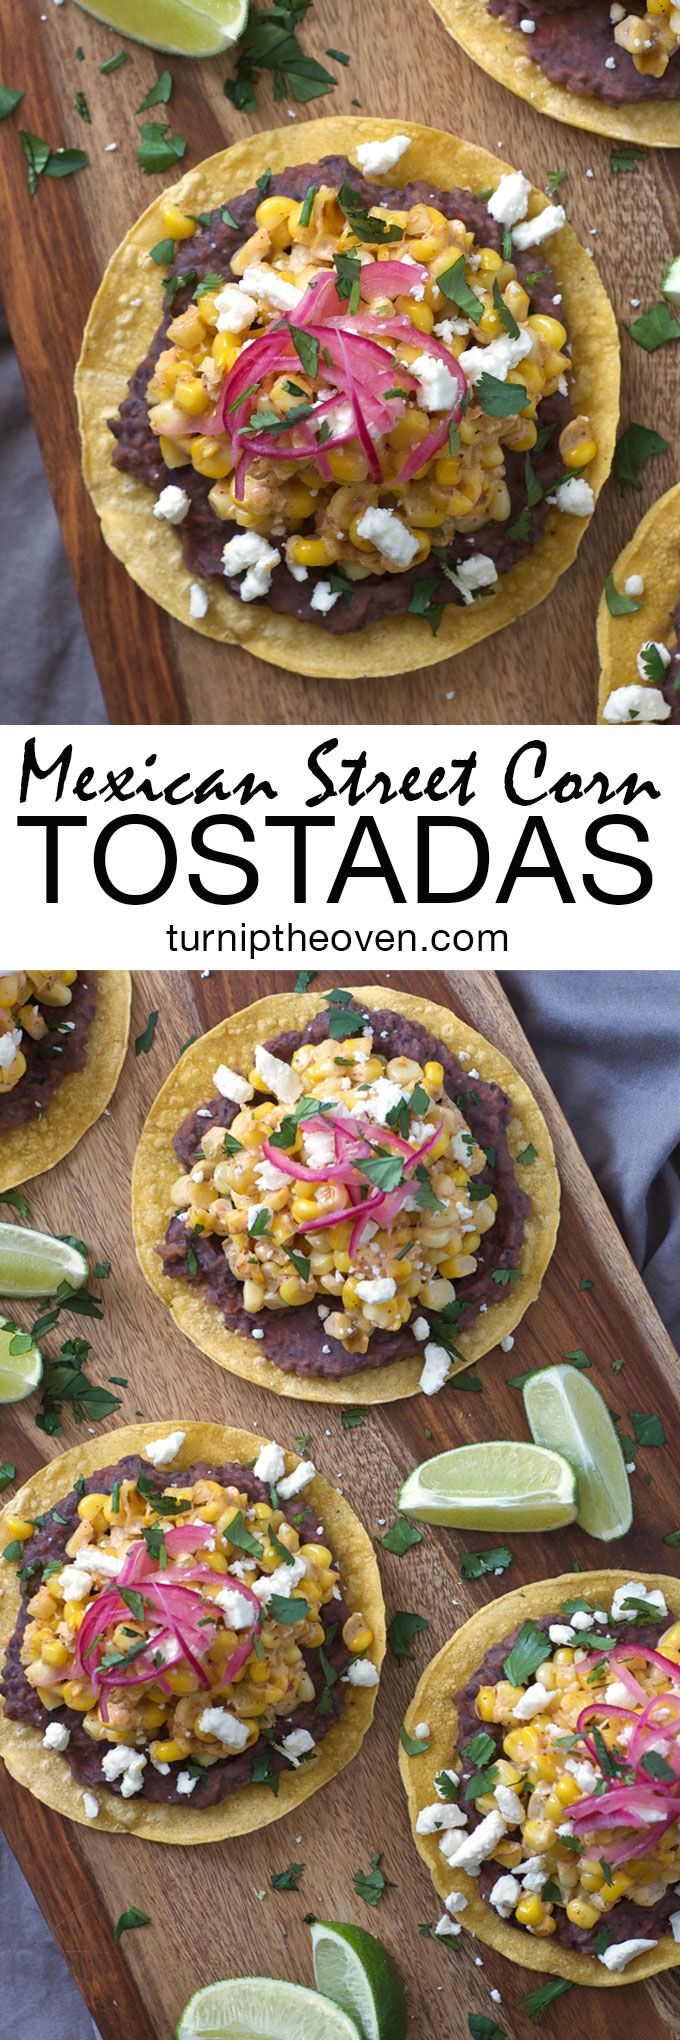 These simple, vegetarian and gluten-free tostadas are topped with a spicy black bean puree and piled high with Mexican street corn flavored with sour cream, chili, lime, garlic, and plenty of feta and chopped fresh cilantro.